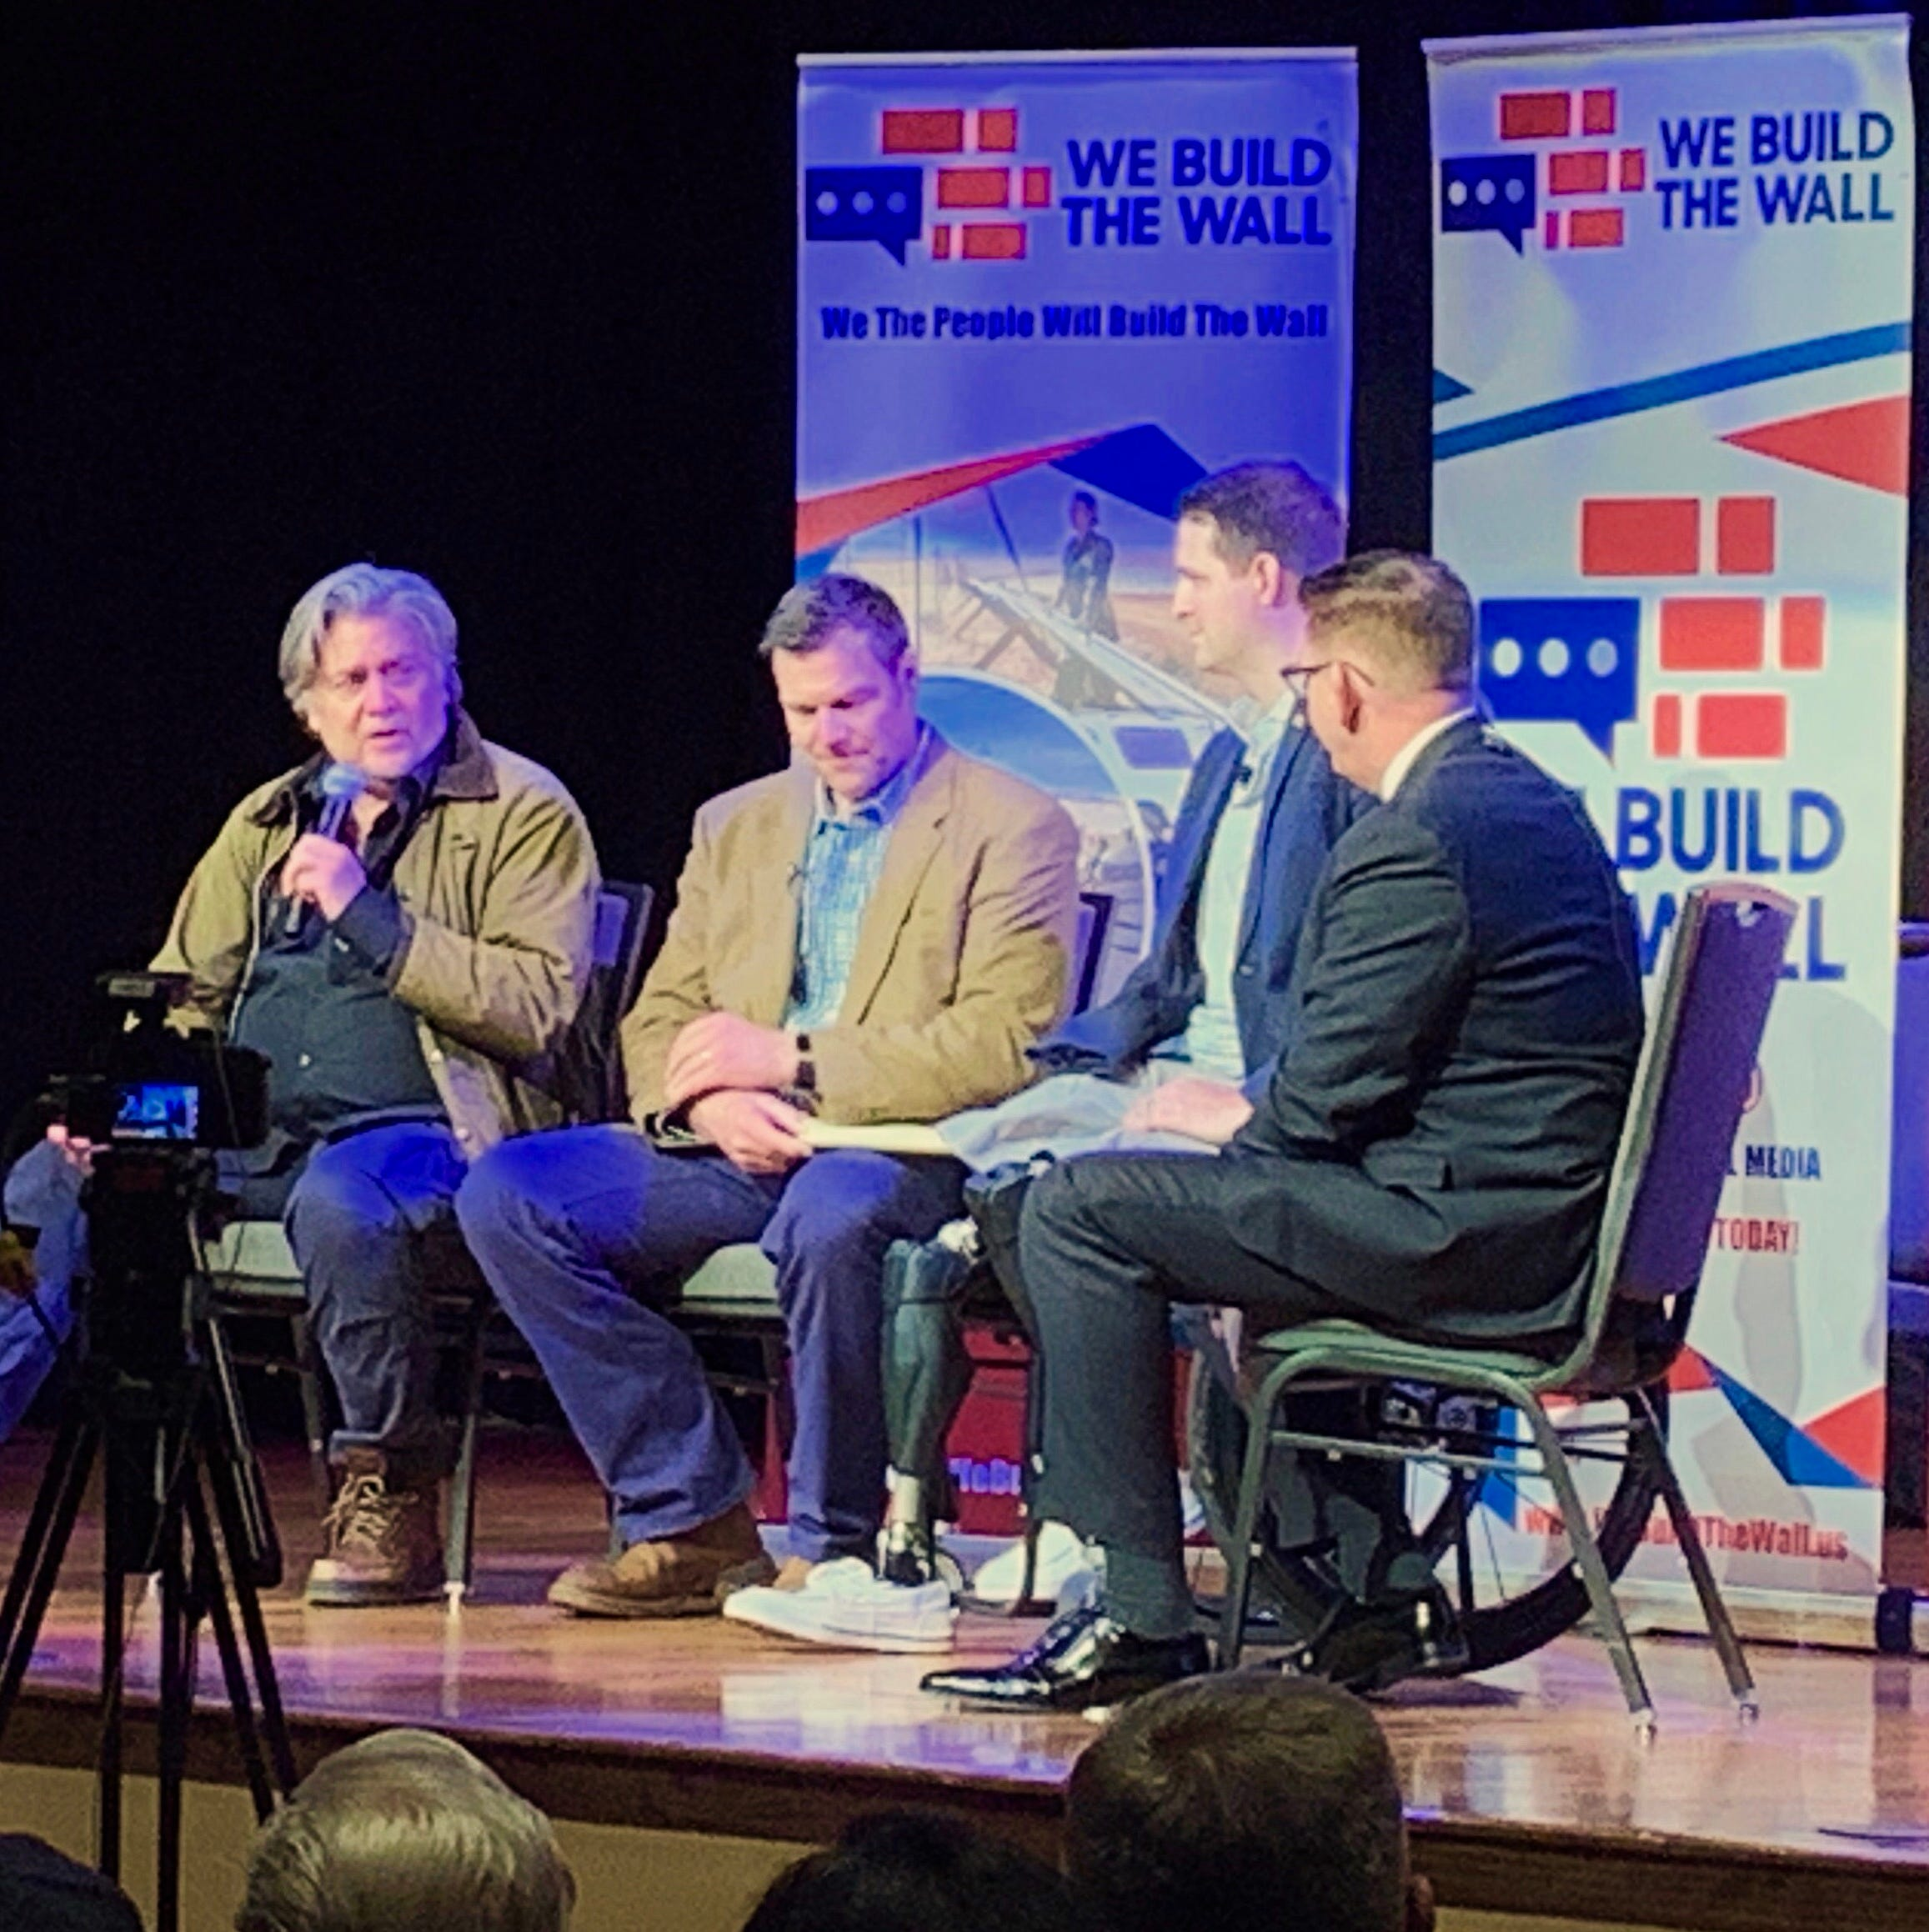 Border wall advocates promote plan at Green Valley town hall